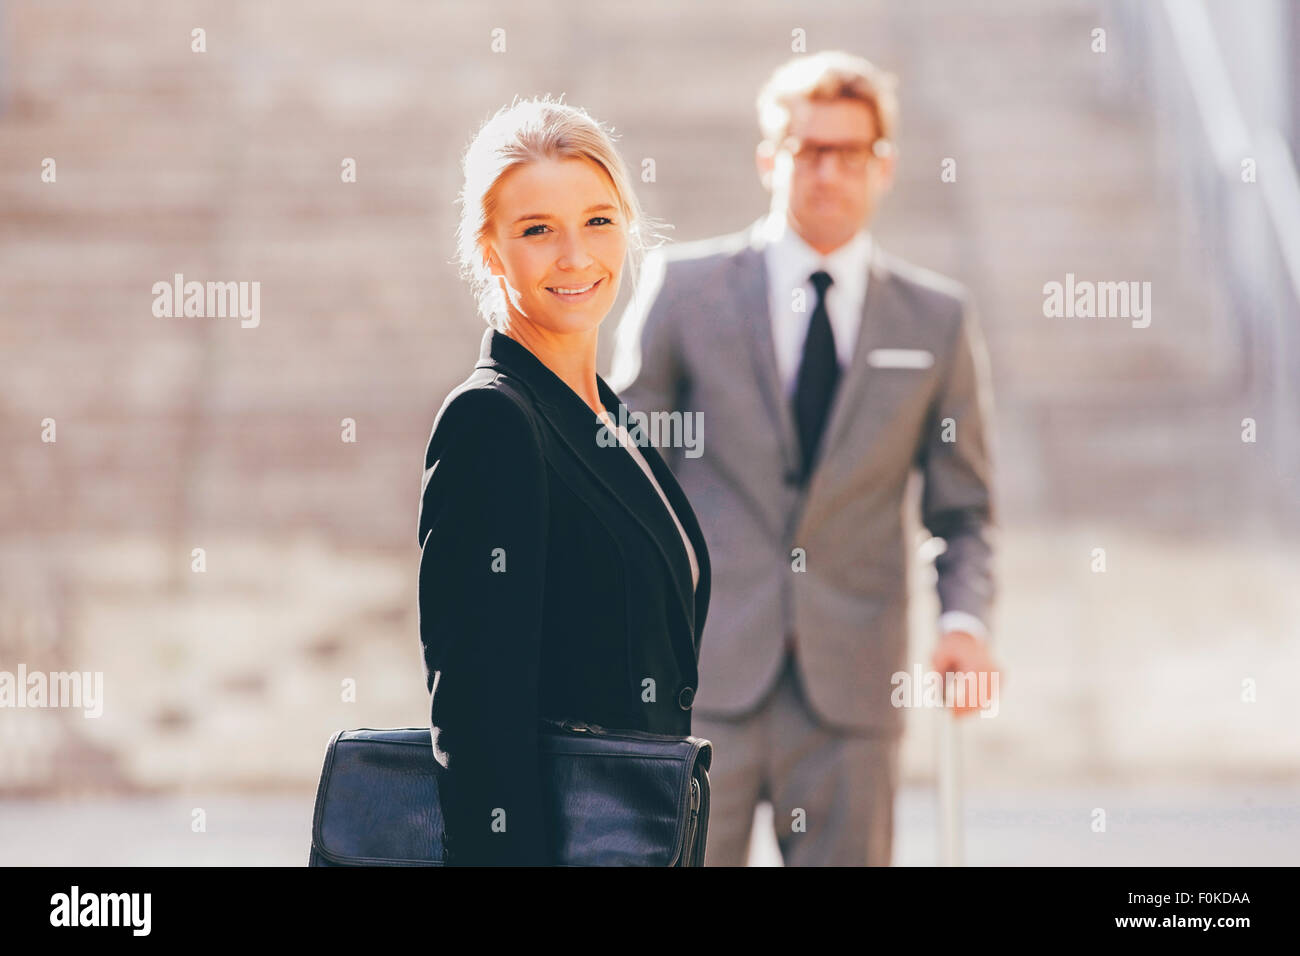 Smiling businesswoman with businessman in background - Stock Image